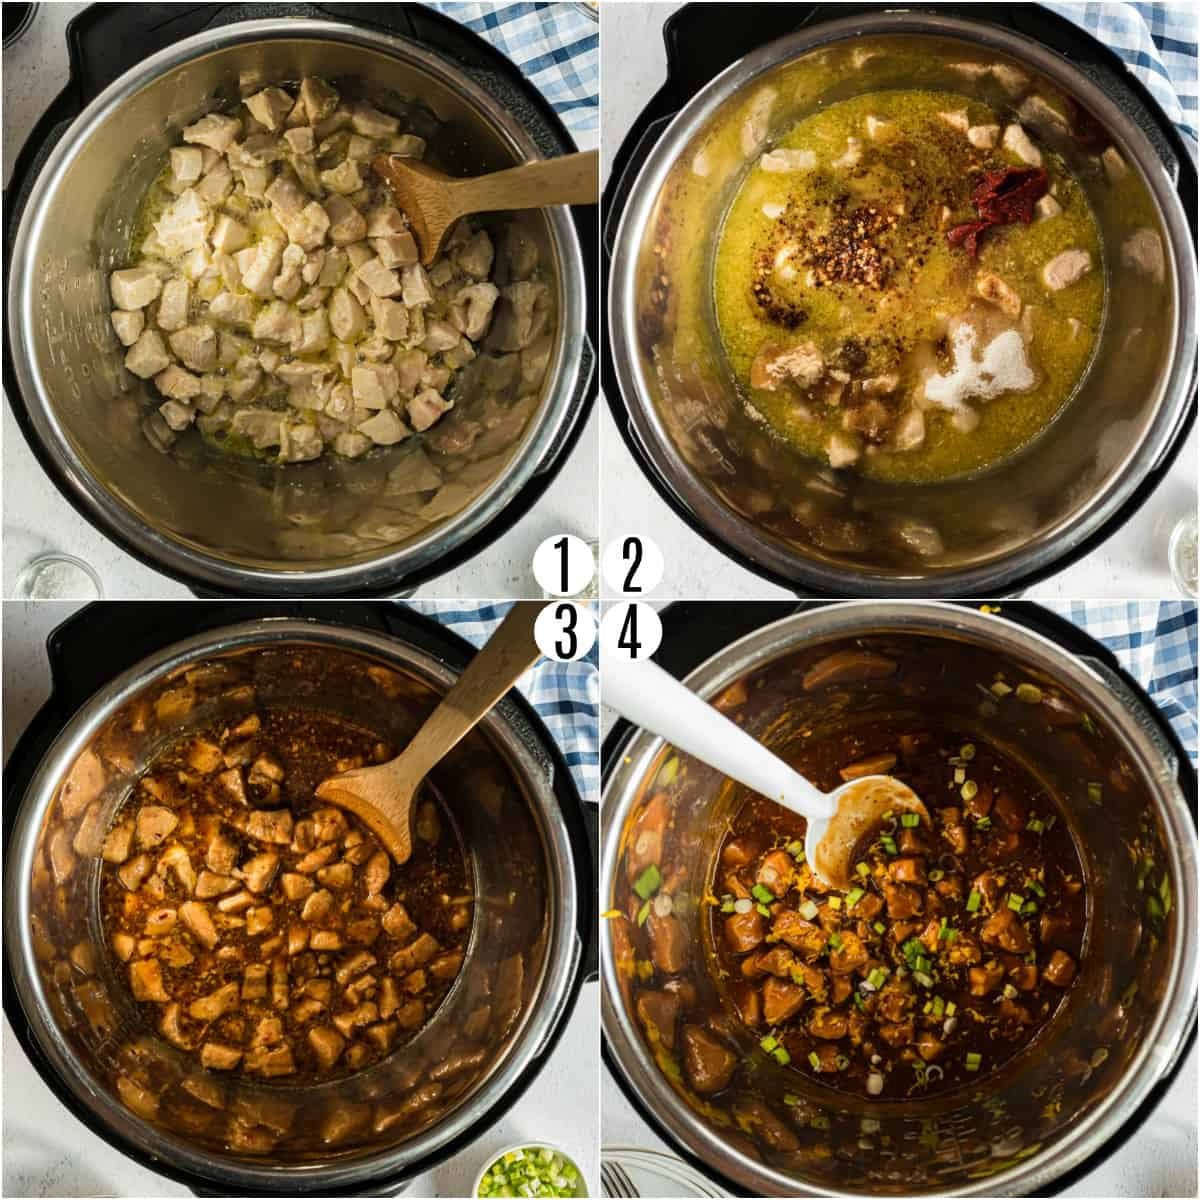 Step by step photos showing how to make orange chicken in the pressure cooker.